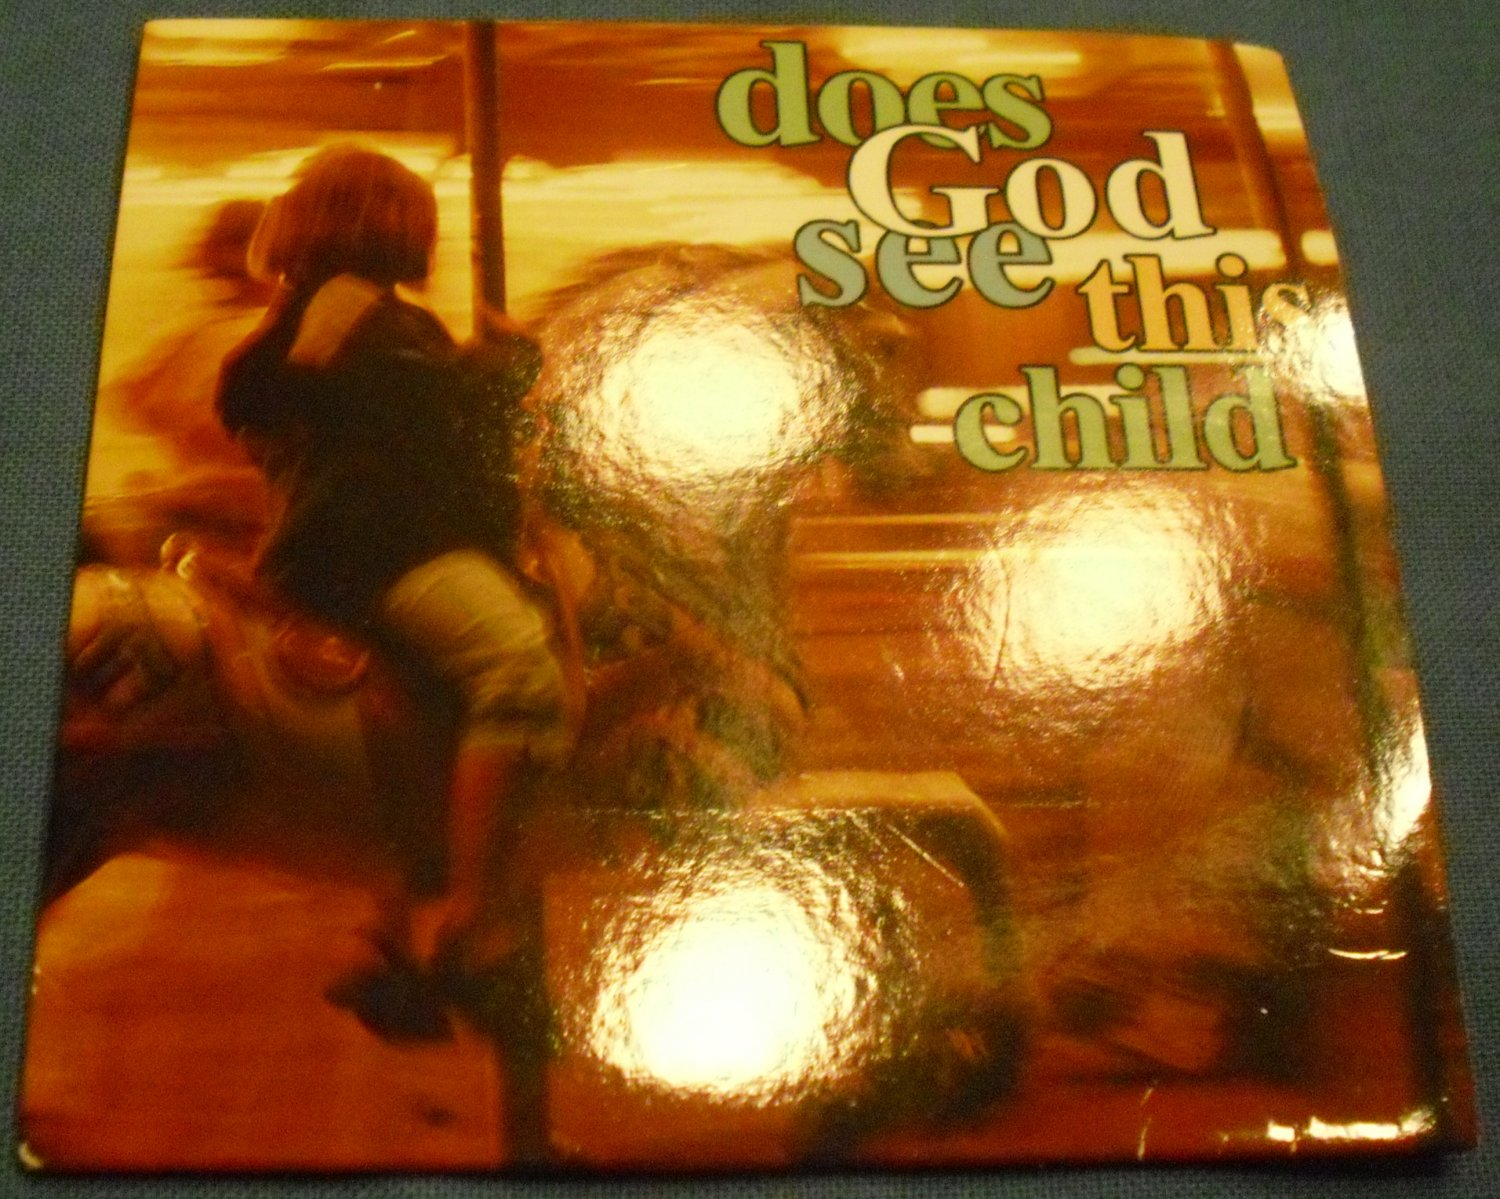 Does God See This Child - DVD